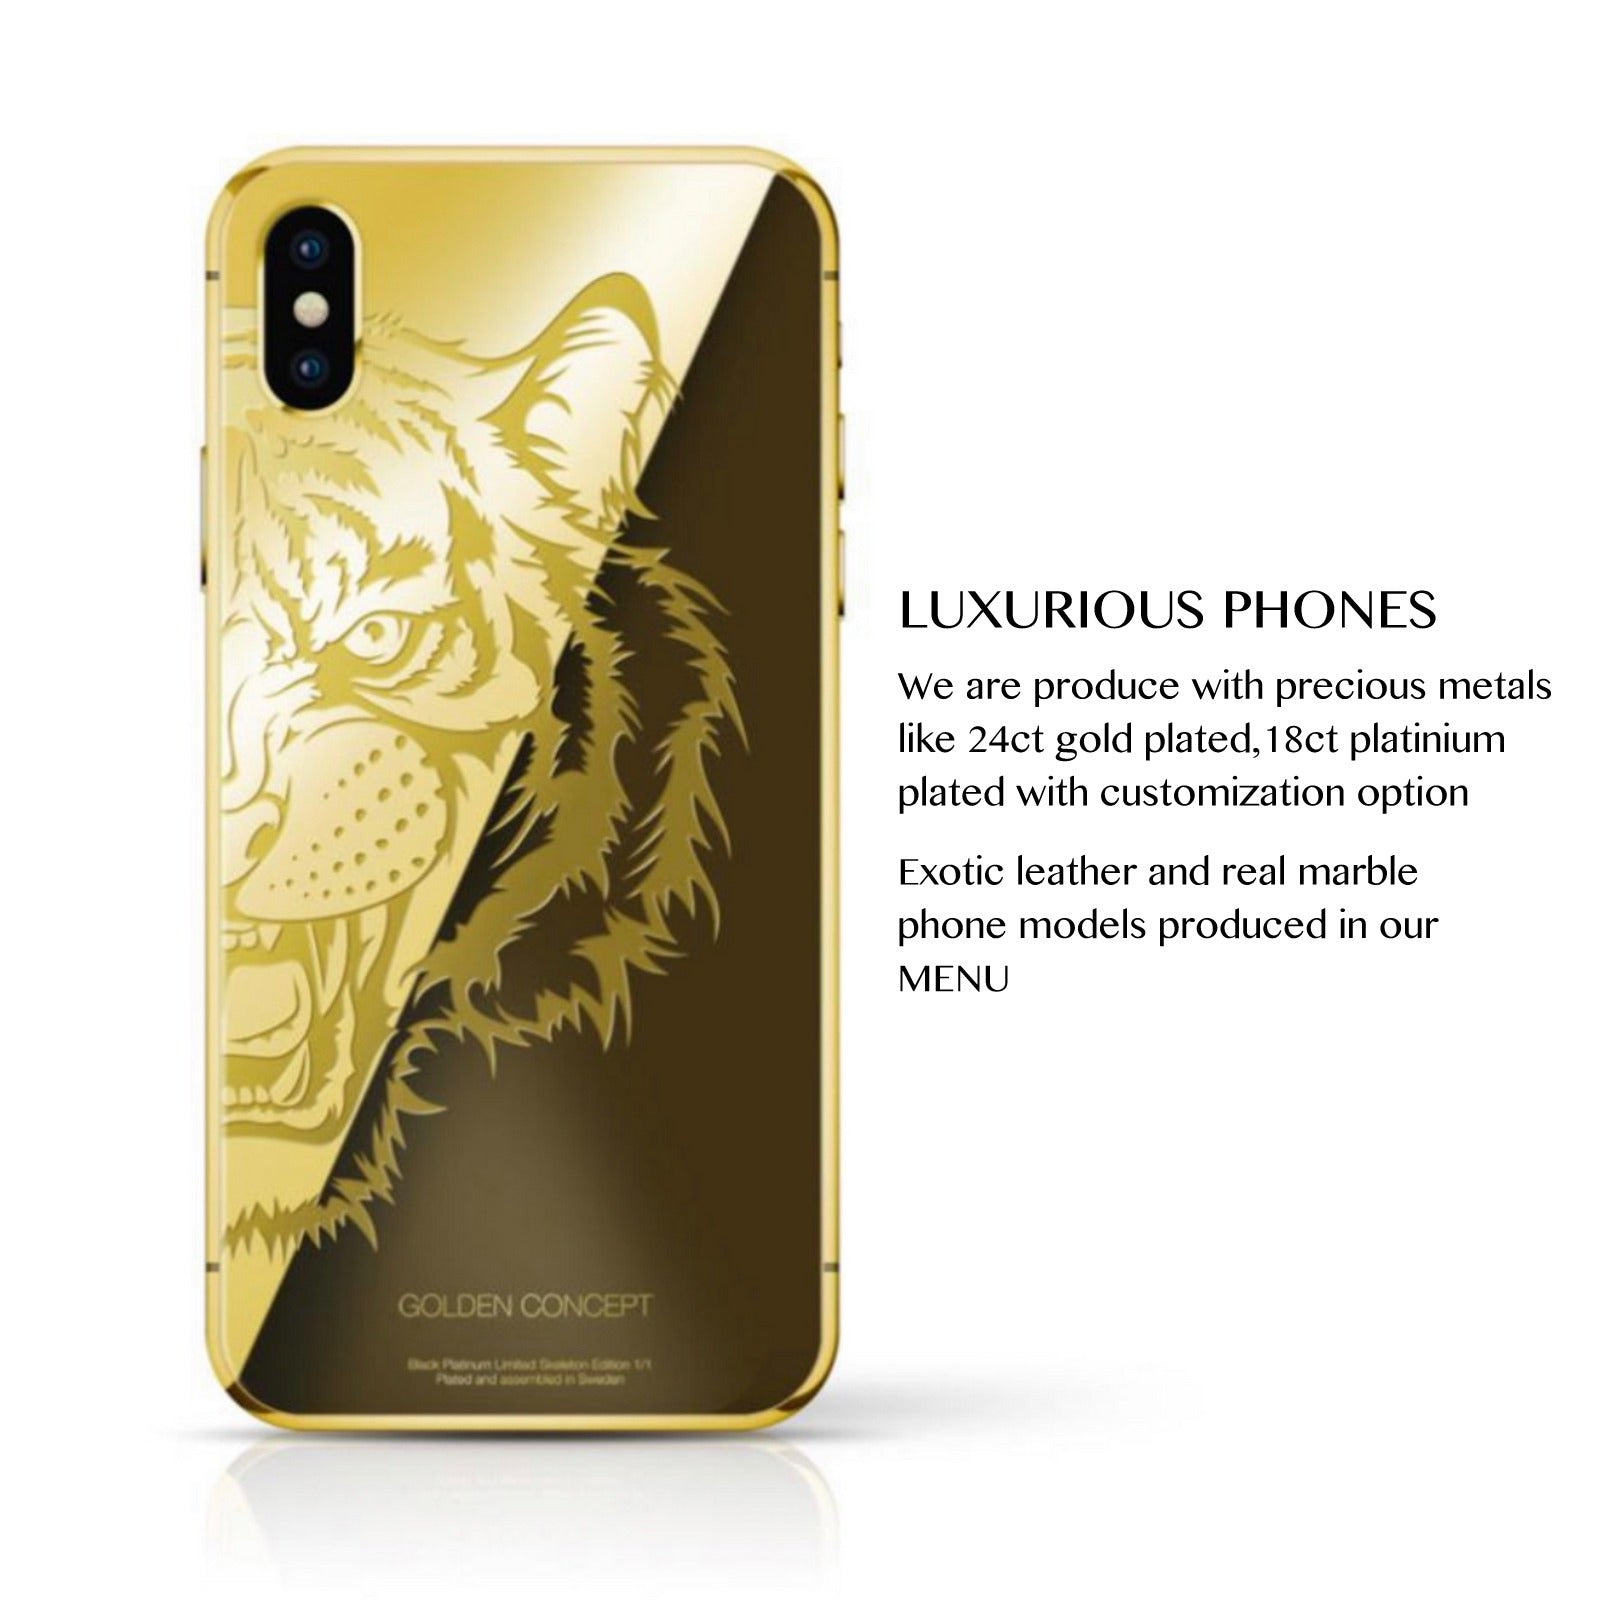 hot sale online 17cfb 39199 Golden Concept: Luxury Phones , Cases , Leather Goods